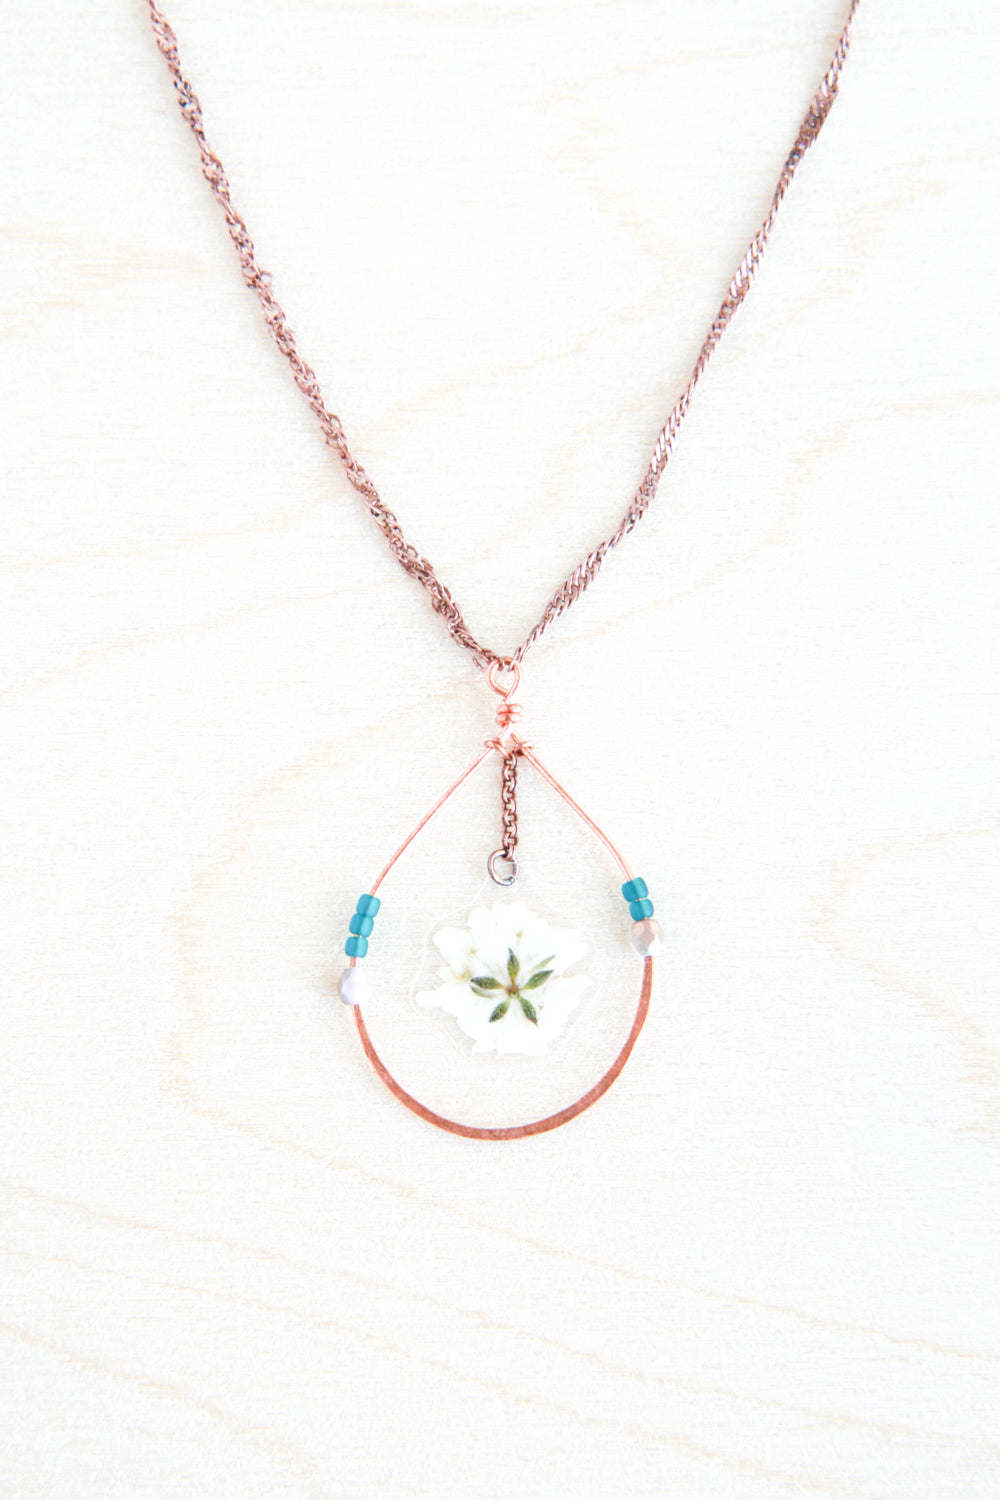 Baby's Breath Pressed Flower Necklace with Copper Teardrop Hoops and Teal Glass Beads